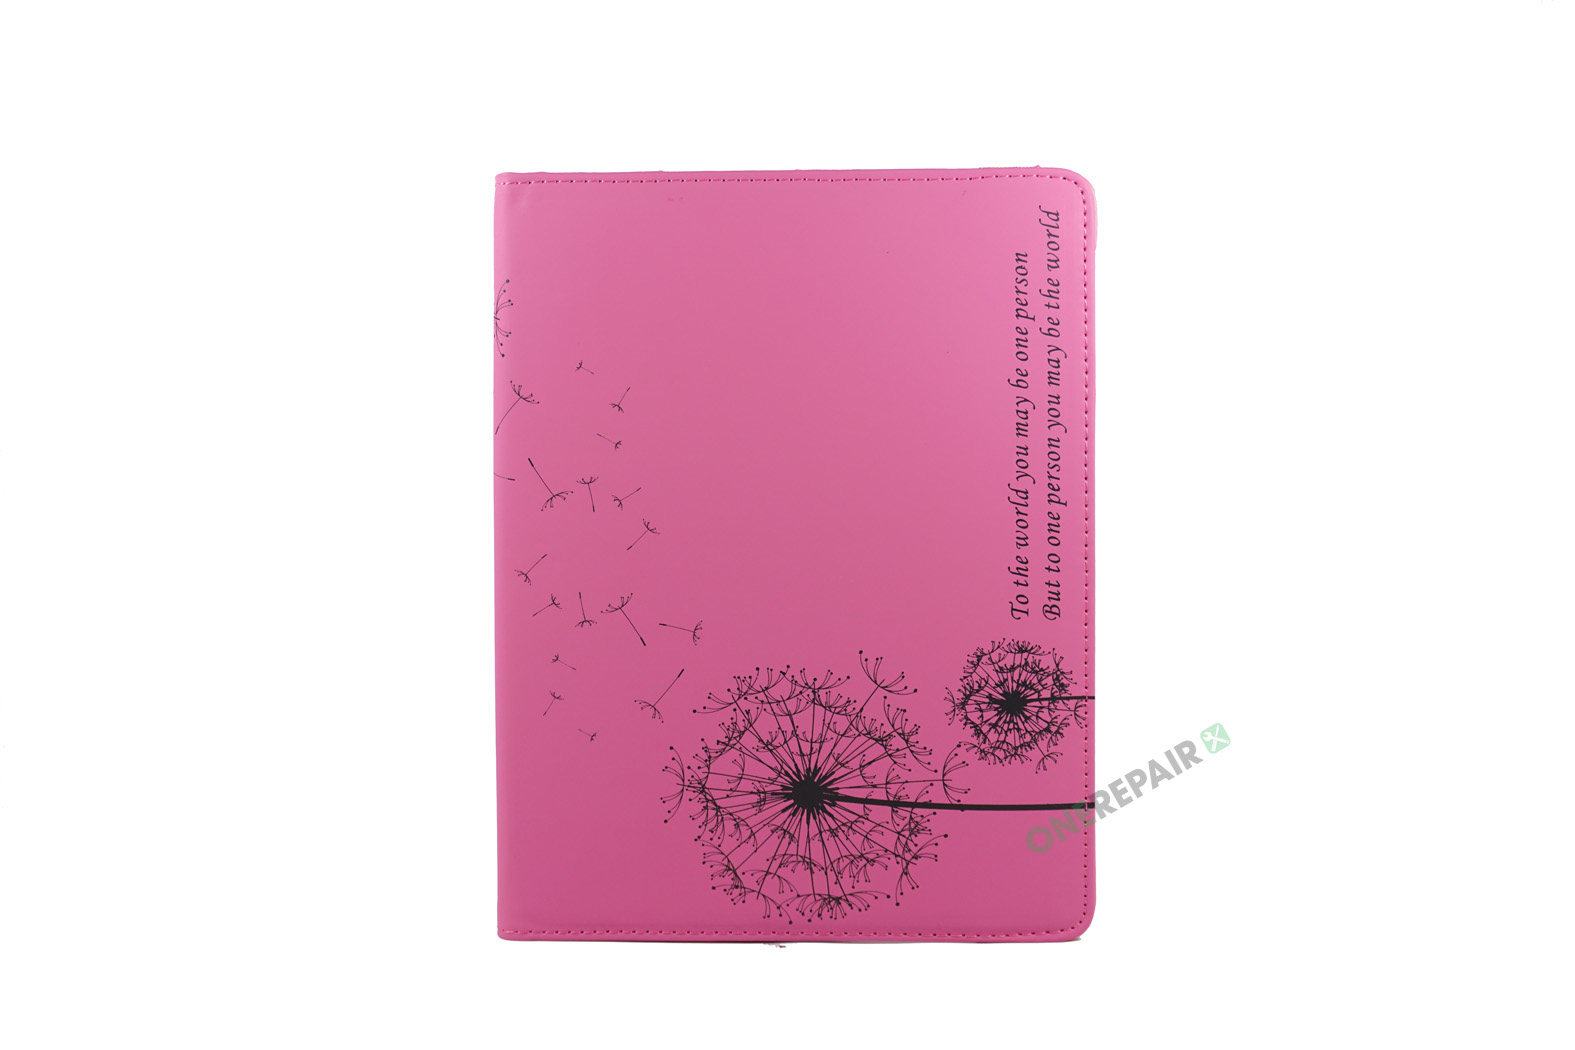 351156_iPad_2_3_4_A1395_A1396_A1430_A1403_1458_A1459_A1460_A1397_Flipcover_Classic_Flower_Blomster_Motiv_360_Cover_LyseRoed_Pink_Billig_Godt_Beskyttelse_OneRepair_WM_00002